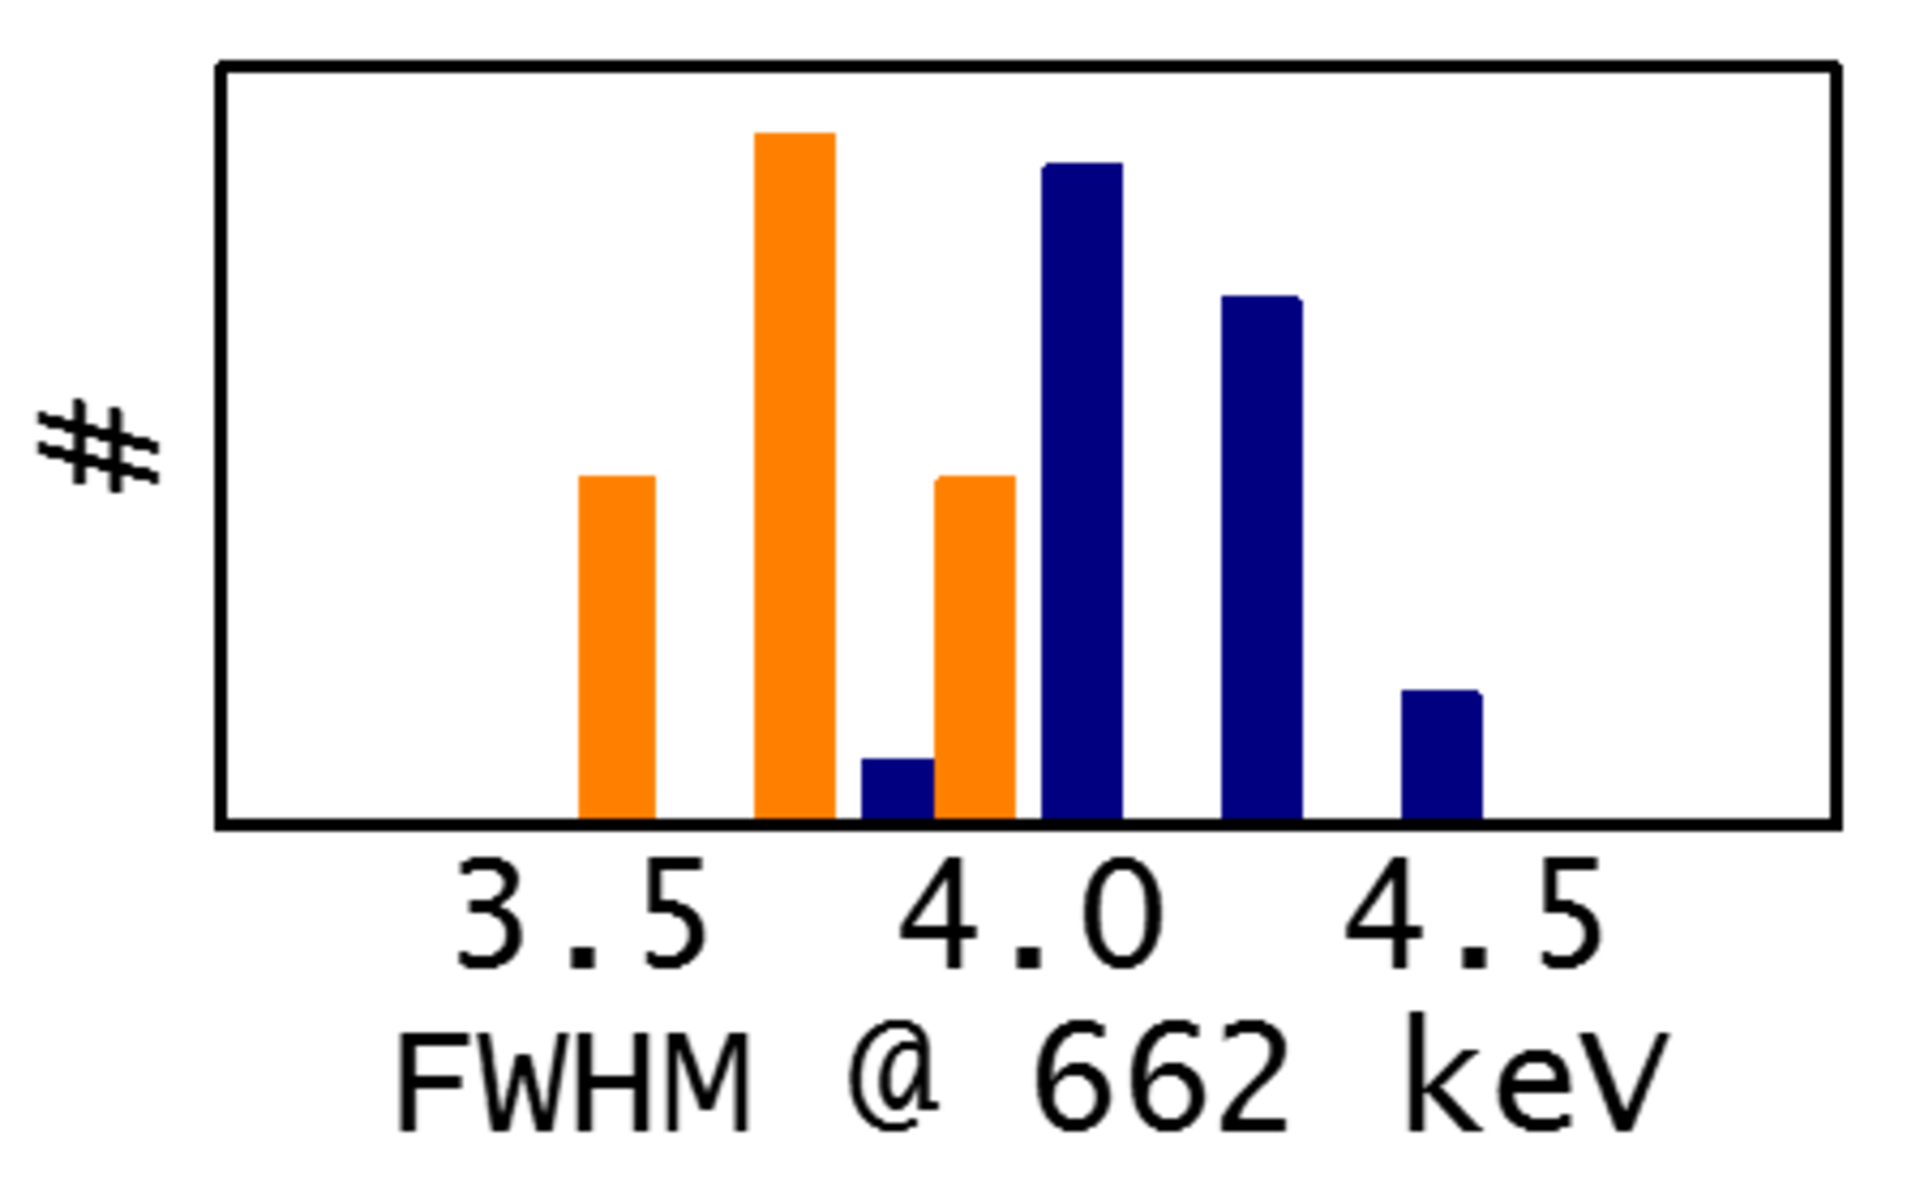 Co-doped (orange) vs standard (blue) CeBr3